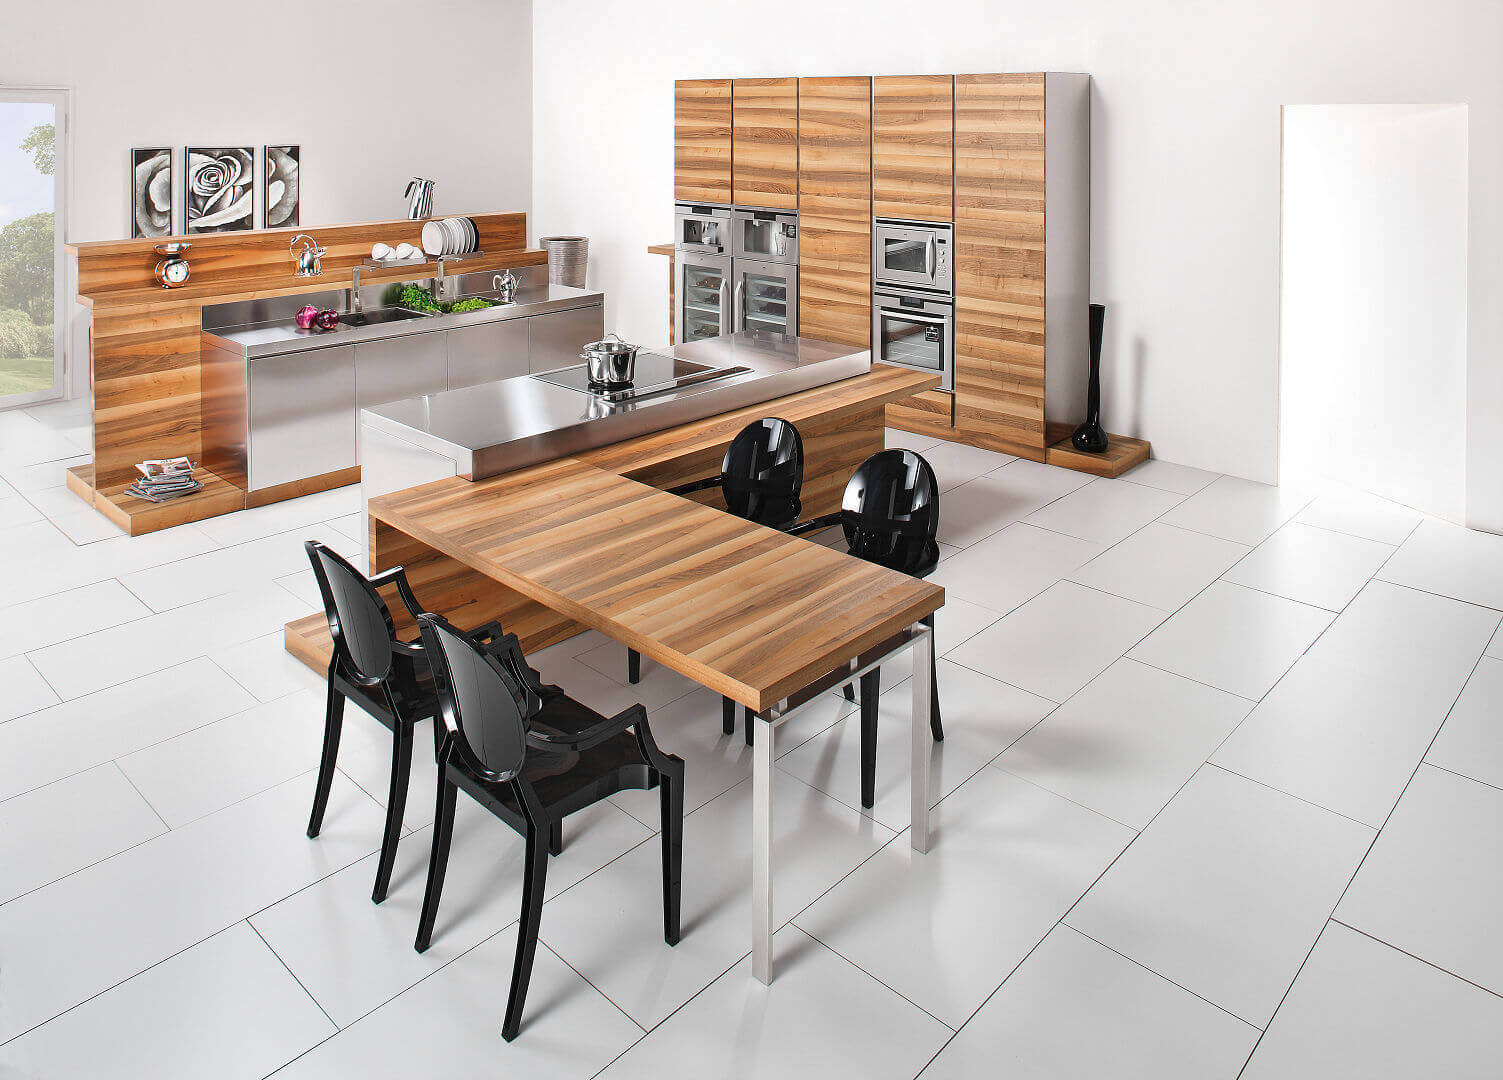 Arca Cucine Italy - Domestic stainless steel kitchens - Hd - table